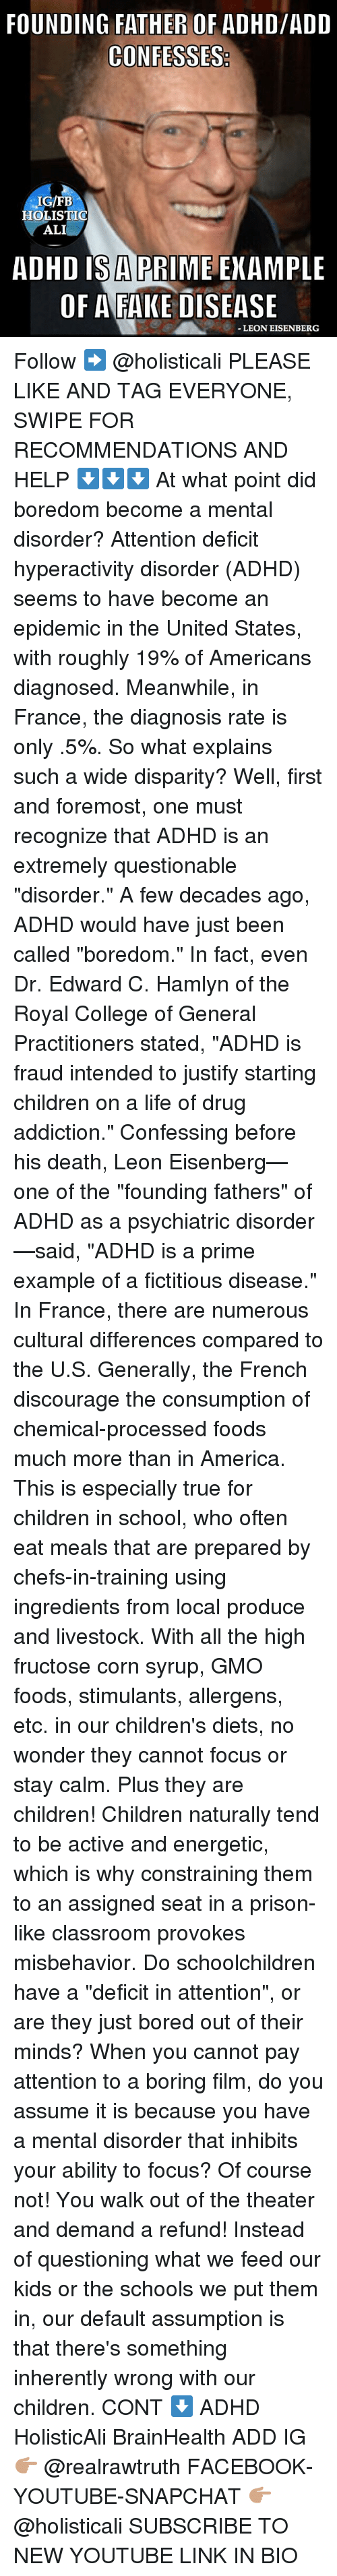 """disparity: FOUNDING FATHER OF ADHD/ADD  CONFESSES  IGIFB  HOLISTIC  ALI  ADHD ISA PRIME EXAMPLE  OF A FAKE DISEASE  -LEON EISENBERG Follow ➡️ @holisticali PLEASE LIKE AND TAG EVERYONE, SWIPE FOR RECOMMENDATIONS AND HELP ⬇️⬇️⬇️ At what point did boredom become a mental disorder? Attention deficit hyperactivity disorder (ADHD) seems to have become an epidemic in the United States, with roughly 19% of Americans diagnosed. Meanwhile, in France, the diagnosis rate is only .5%. So what explains such a wide disparity? Well, first and foremost, one must recognize that ADHD is an extremely questionable """"disorder."""" A few decades ago, ADHD would have just been called """"boredom."""" In fact, even Dr. Edward C. Hamlyn of the Royal College of General Practitioners stated, """"ADHD is fraud intended to justify starting children on a life of drug addiction."""" Confessing before his death, Leon Eisenberg—one of the """"founding fathers"""" of ADHD as a psychiatric disorder—said, """"ADHD is a prime example of a fictitious disease."""" In France, there are numerous cultural differences compared to the U.S. Generally, the French discourage the consumption of chemical-processed foods much more than in America. This is especially true for children in school, who often eat meals that are prepared by chefs-in-training using ingredients from local produce and livestock. With all the high fructose corn syrup, GMO foods, stimulants, allergens, etc. in our children's diets, no wonder they cannot focus or stay calm. Plus they are children! Children naturally tend to be active and energetic, which is why constraining them to an assigned seat in a prison-like classroom provokes misbehavior. Do schoolchildren have a """"deficit in attention"""", or are they just bored out of their minds? When you cannot pay attention to a boring film, do you assume it is because you have a mental disorder that inhibits your ability to focus? Of course not! You walk out of the theater and demand a refund! Instead of questioning what we feed"""